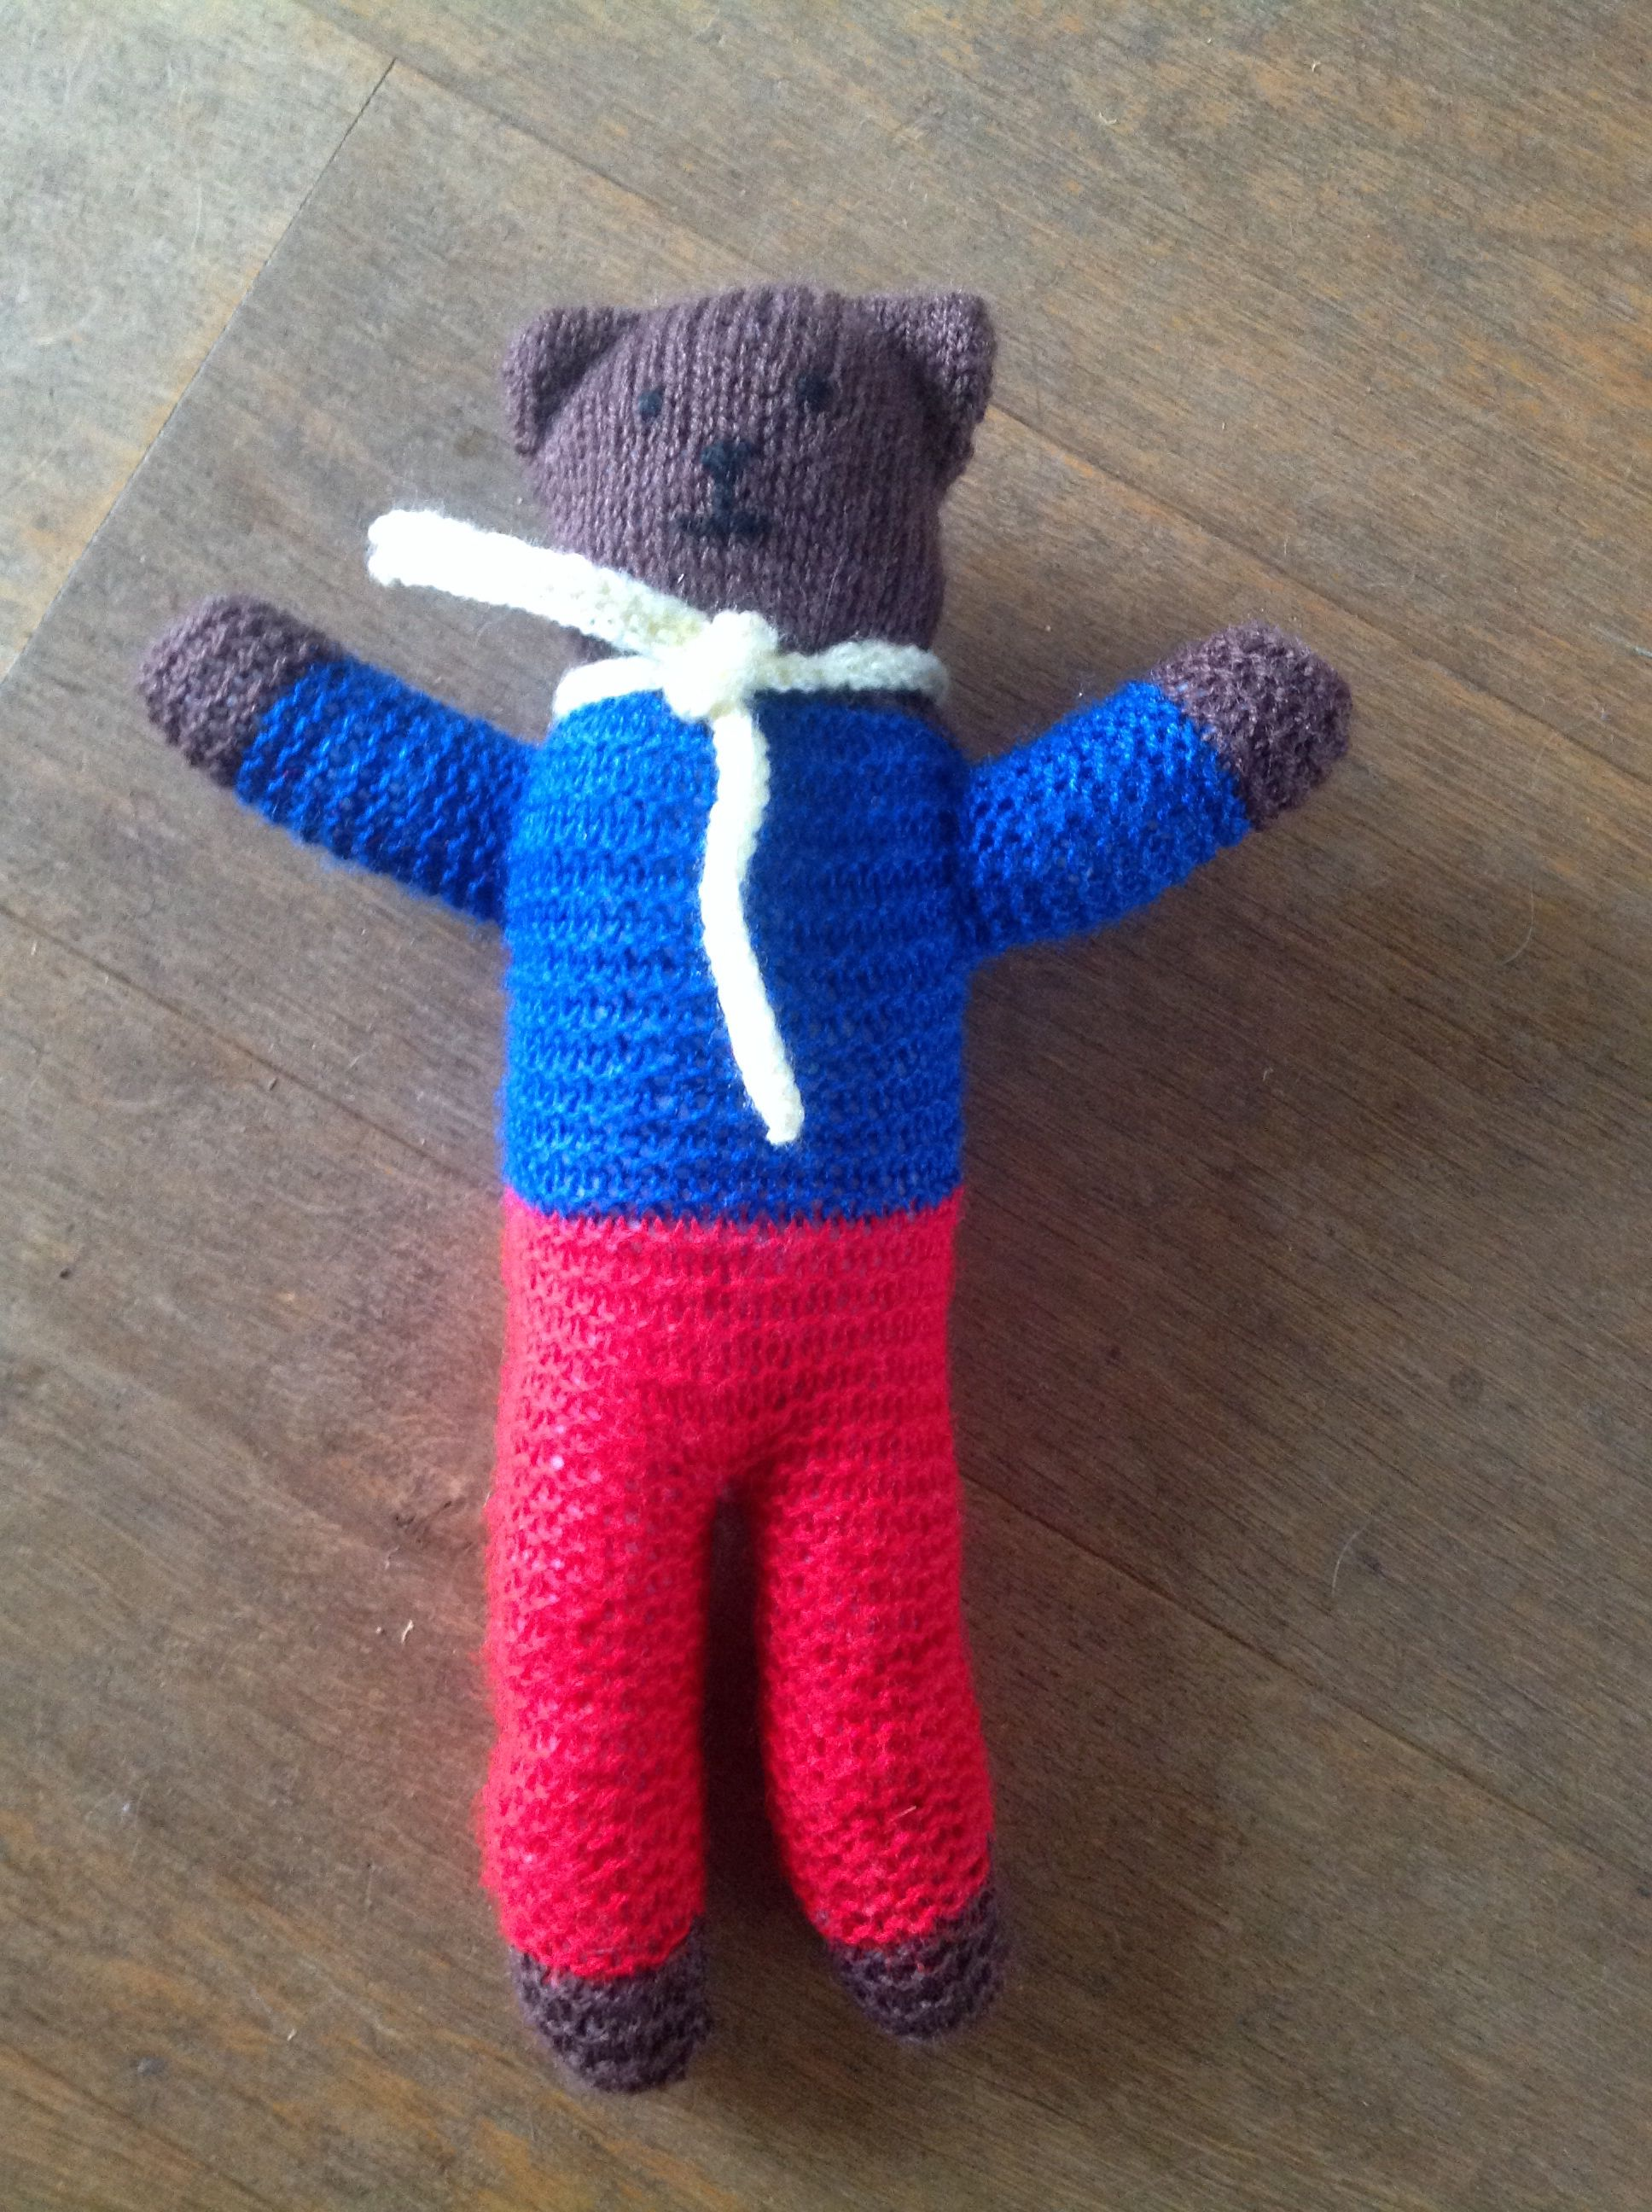 Teddy knitted using the teddies for tragedies knitting pattern for teddy knitted using the teddies for tragedies knitting pattern for charity bankloansurffo Choice Image